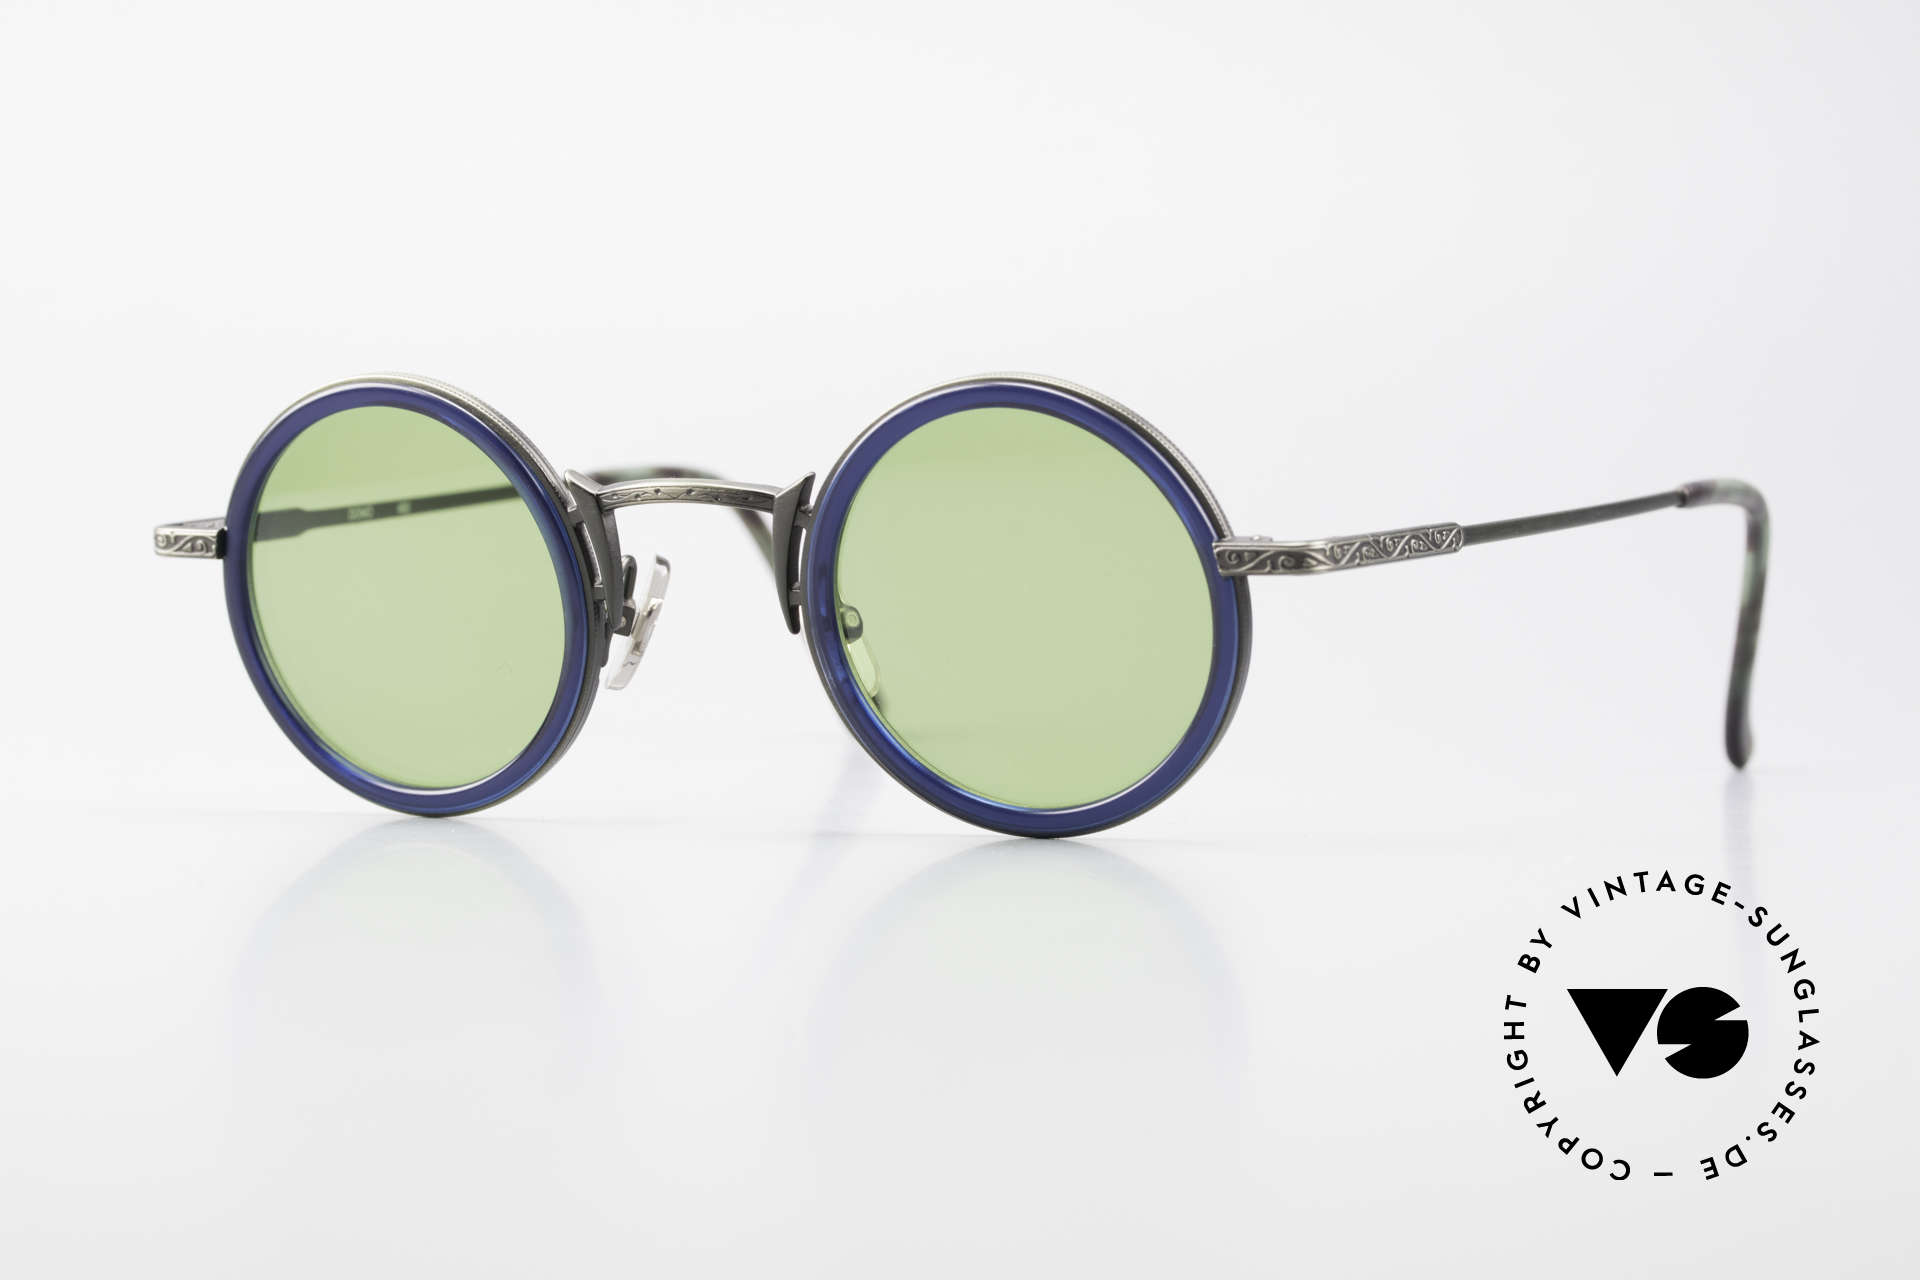 Freudenhaus Domo Round Designer Sunglasses, vintage designer shades by FREUDENHAUS, Munich, Made for Men